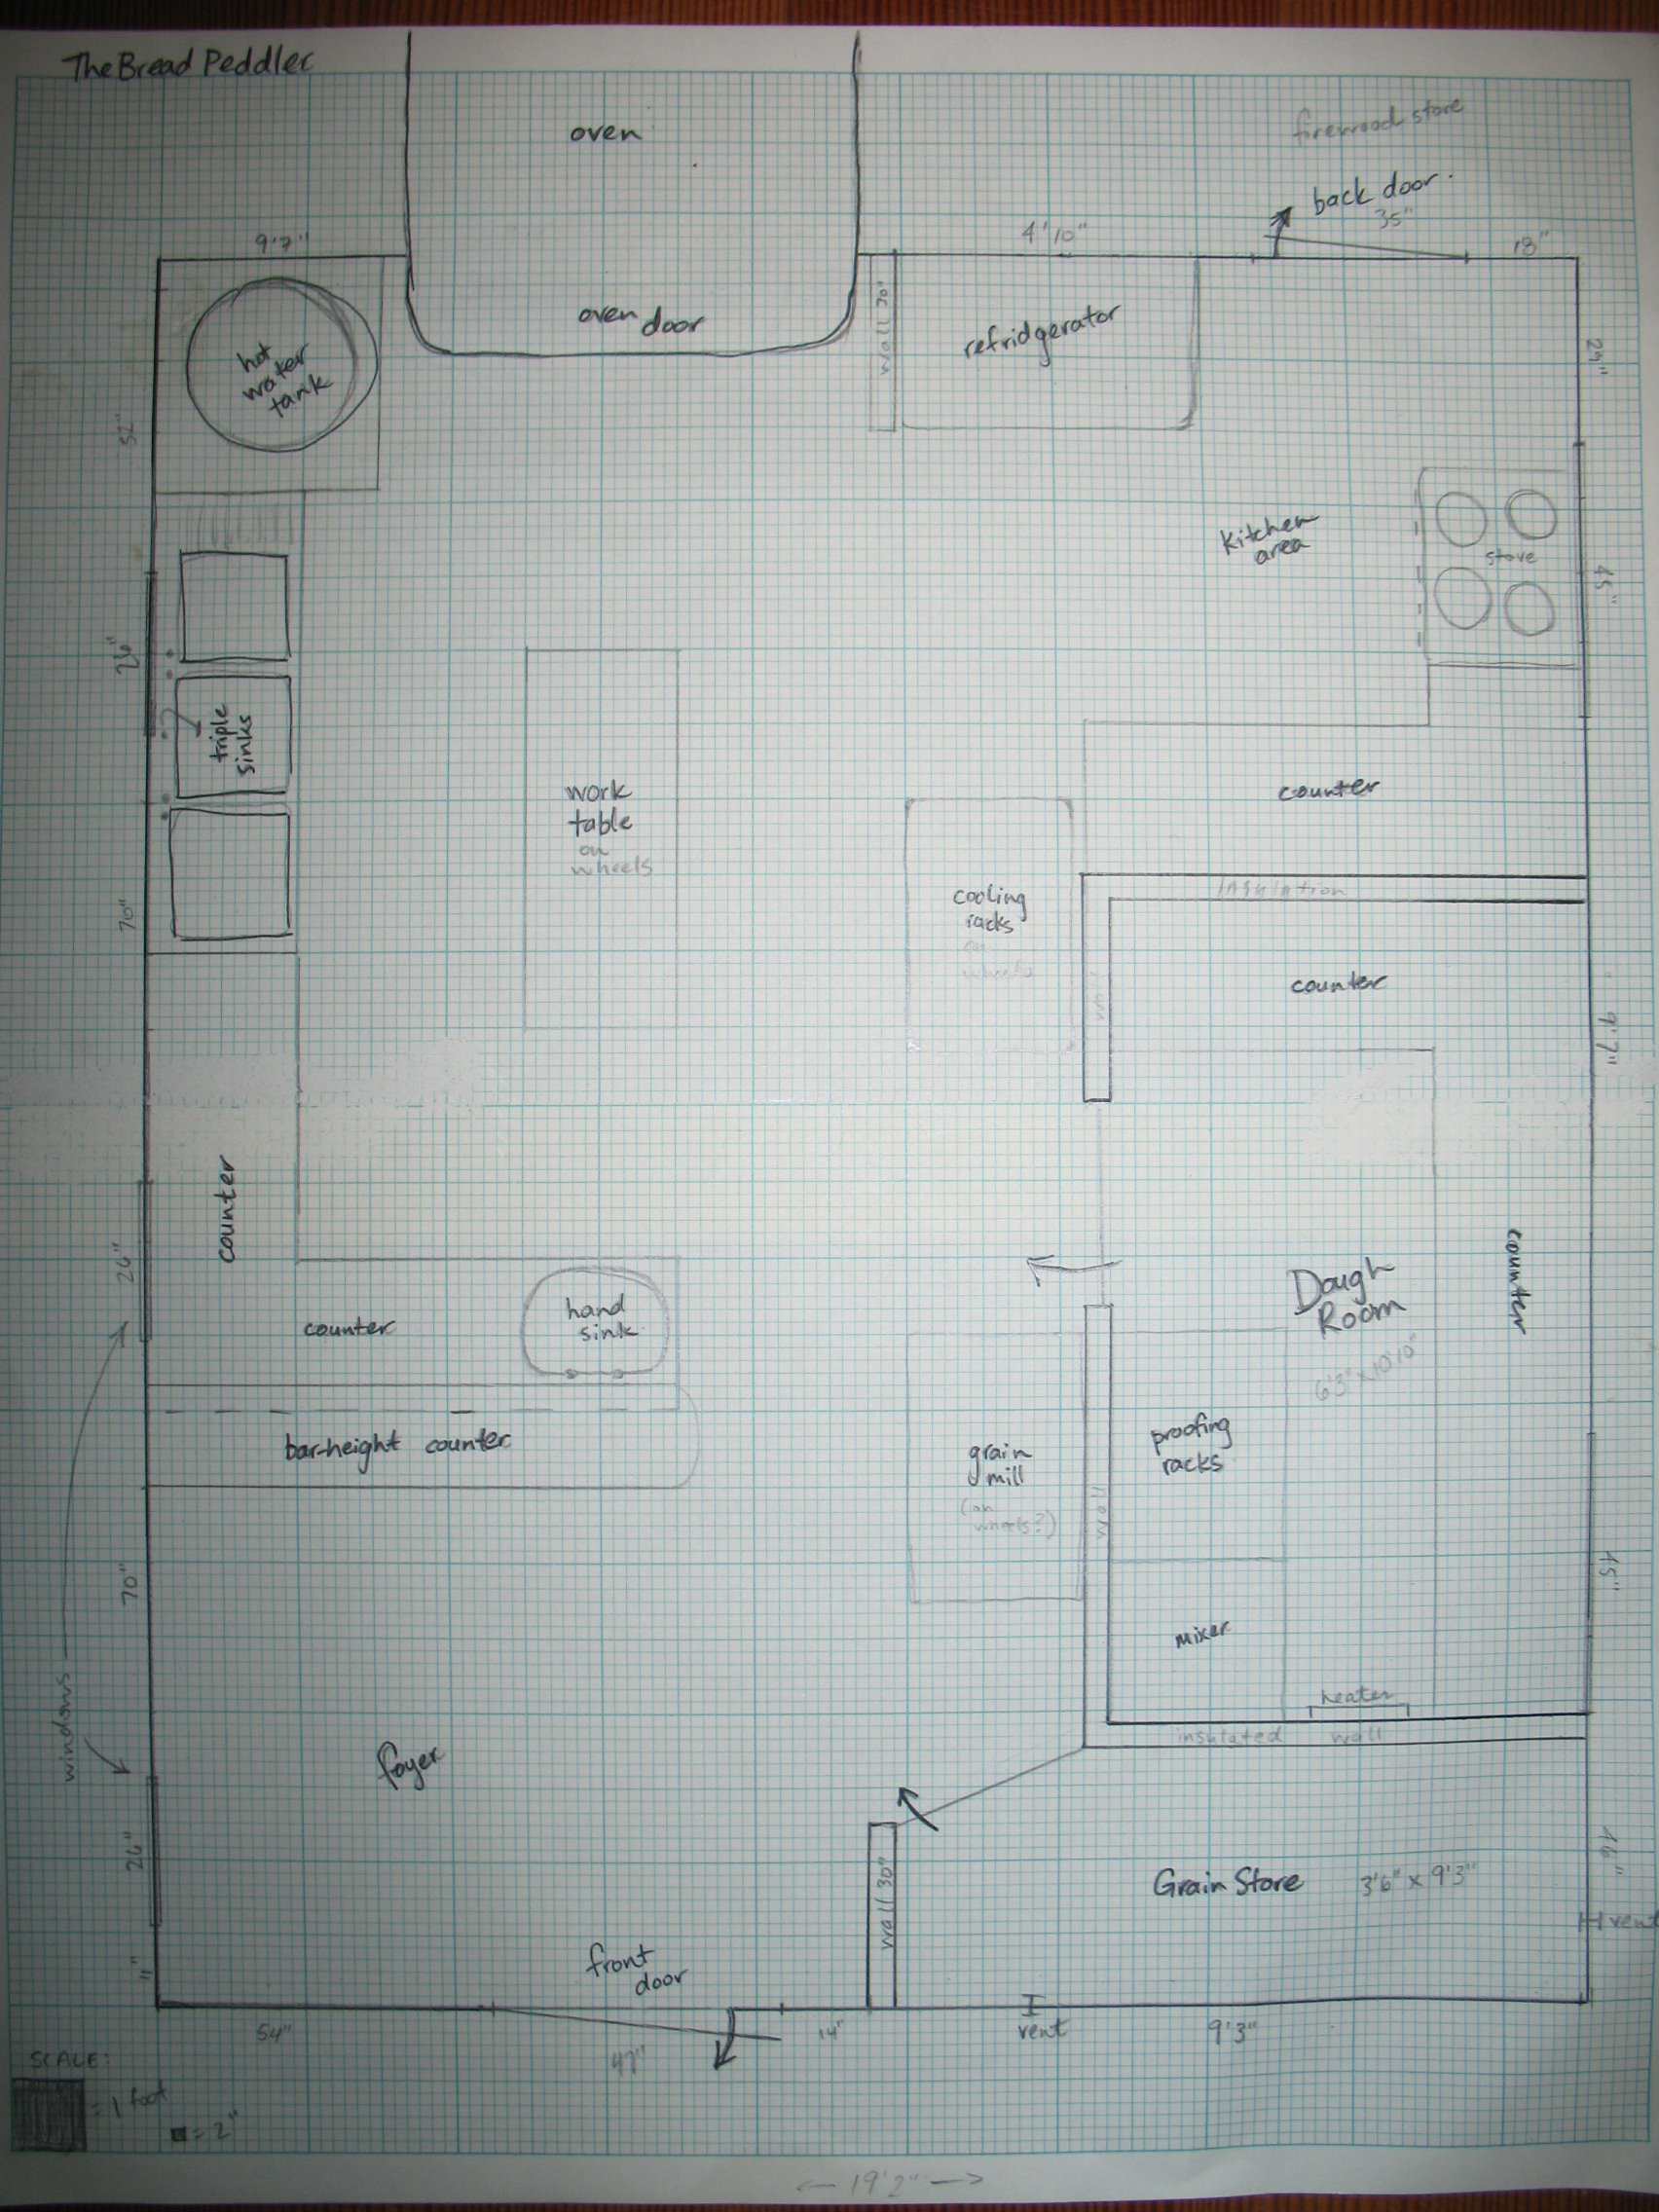 A photo of the bakery layout plan.